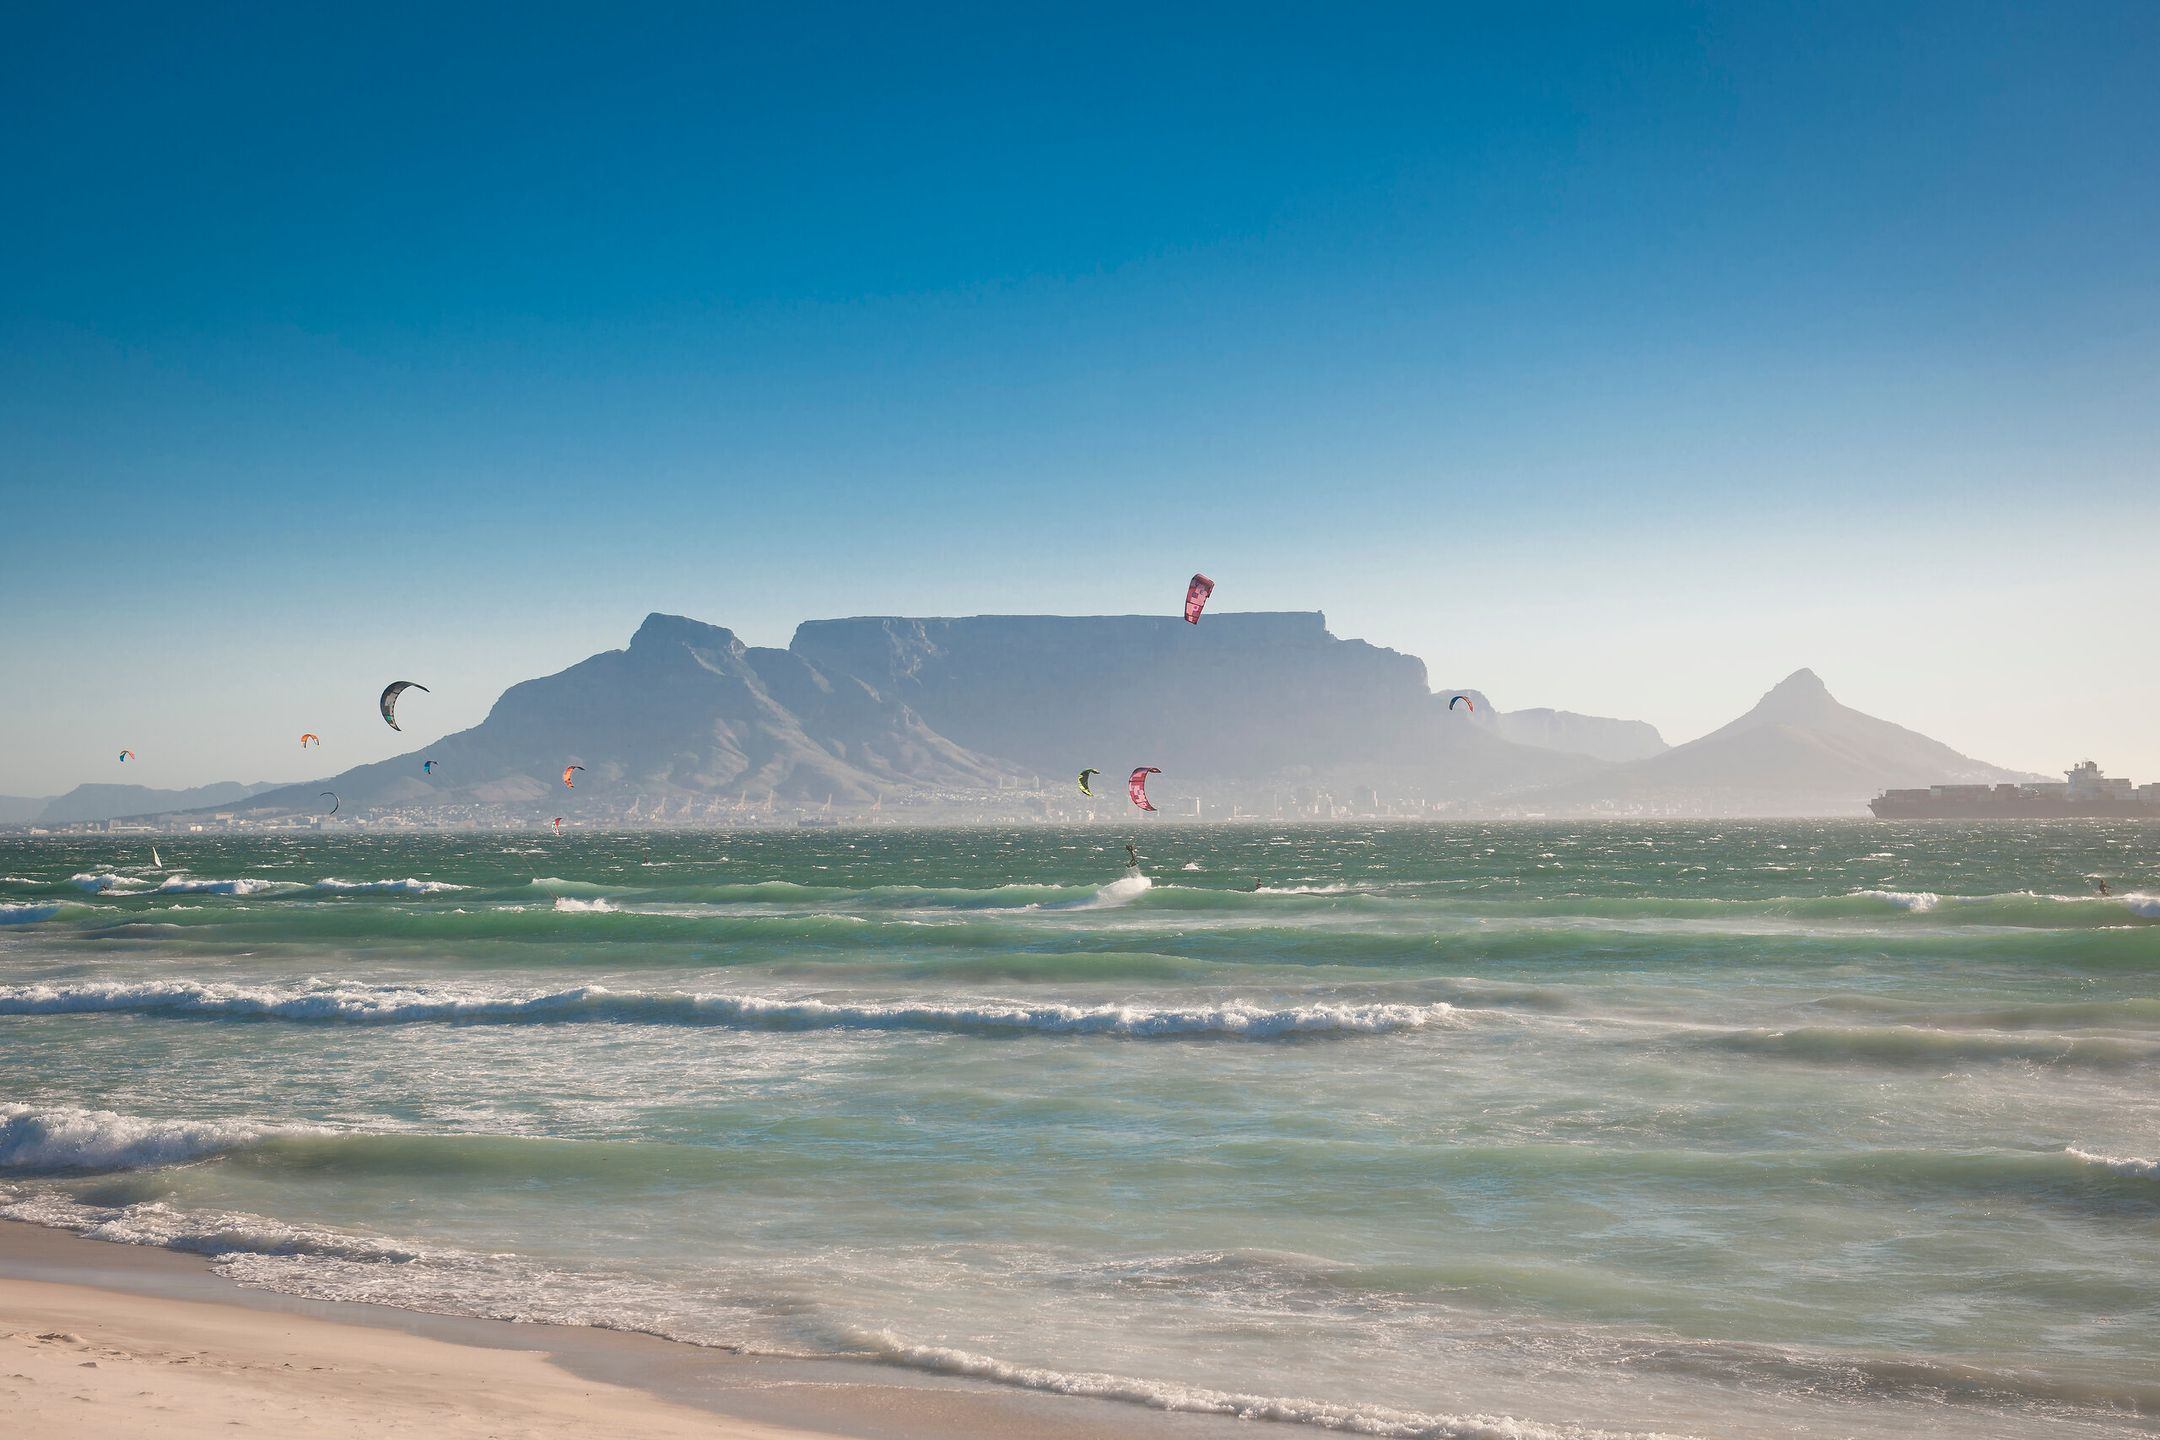 kitesurfing South Africa kitespot Cape Town ripatrip travel big